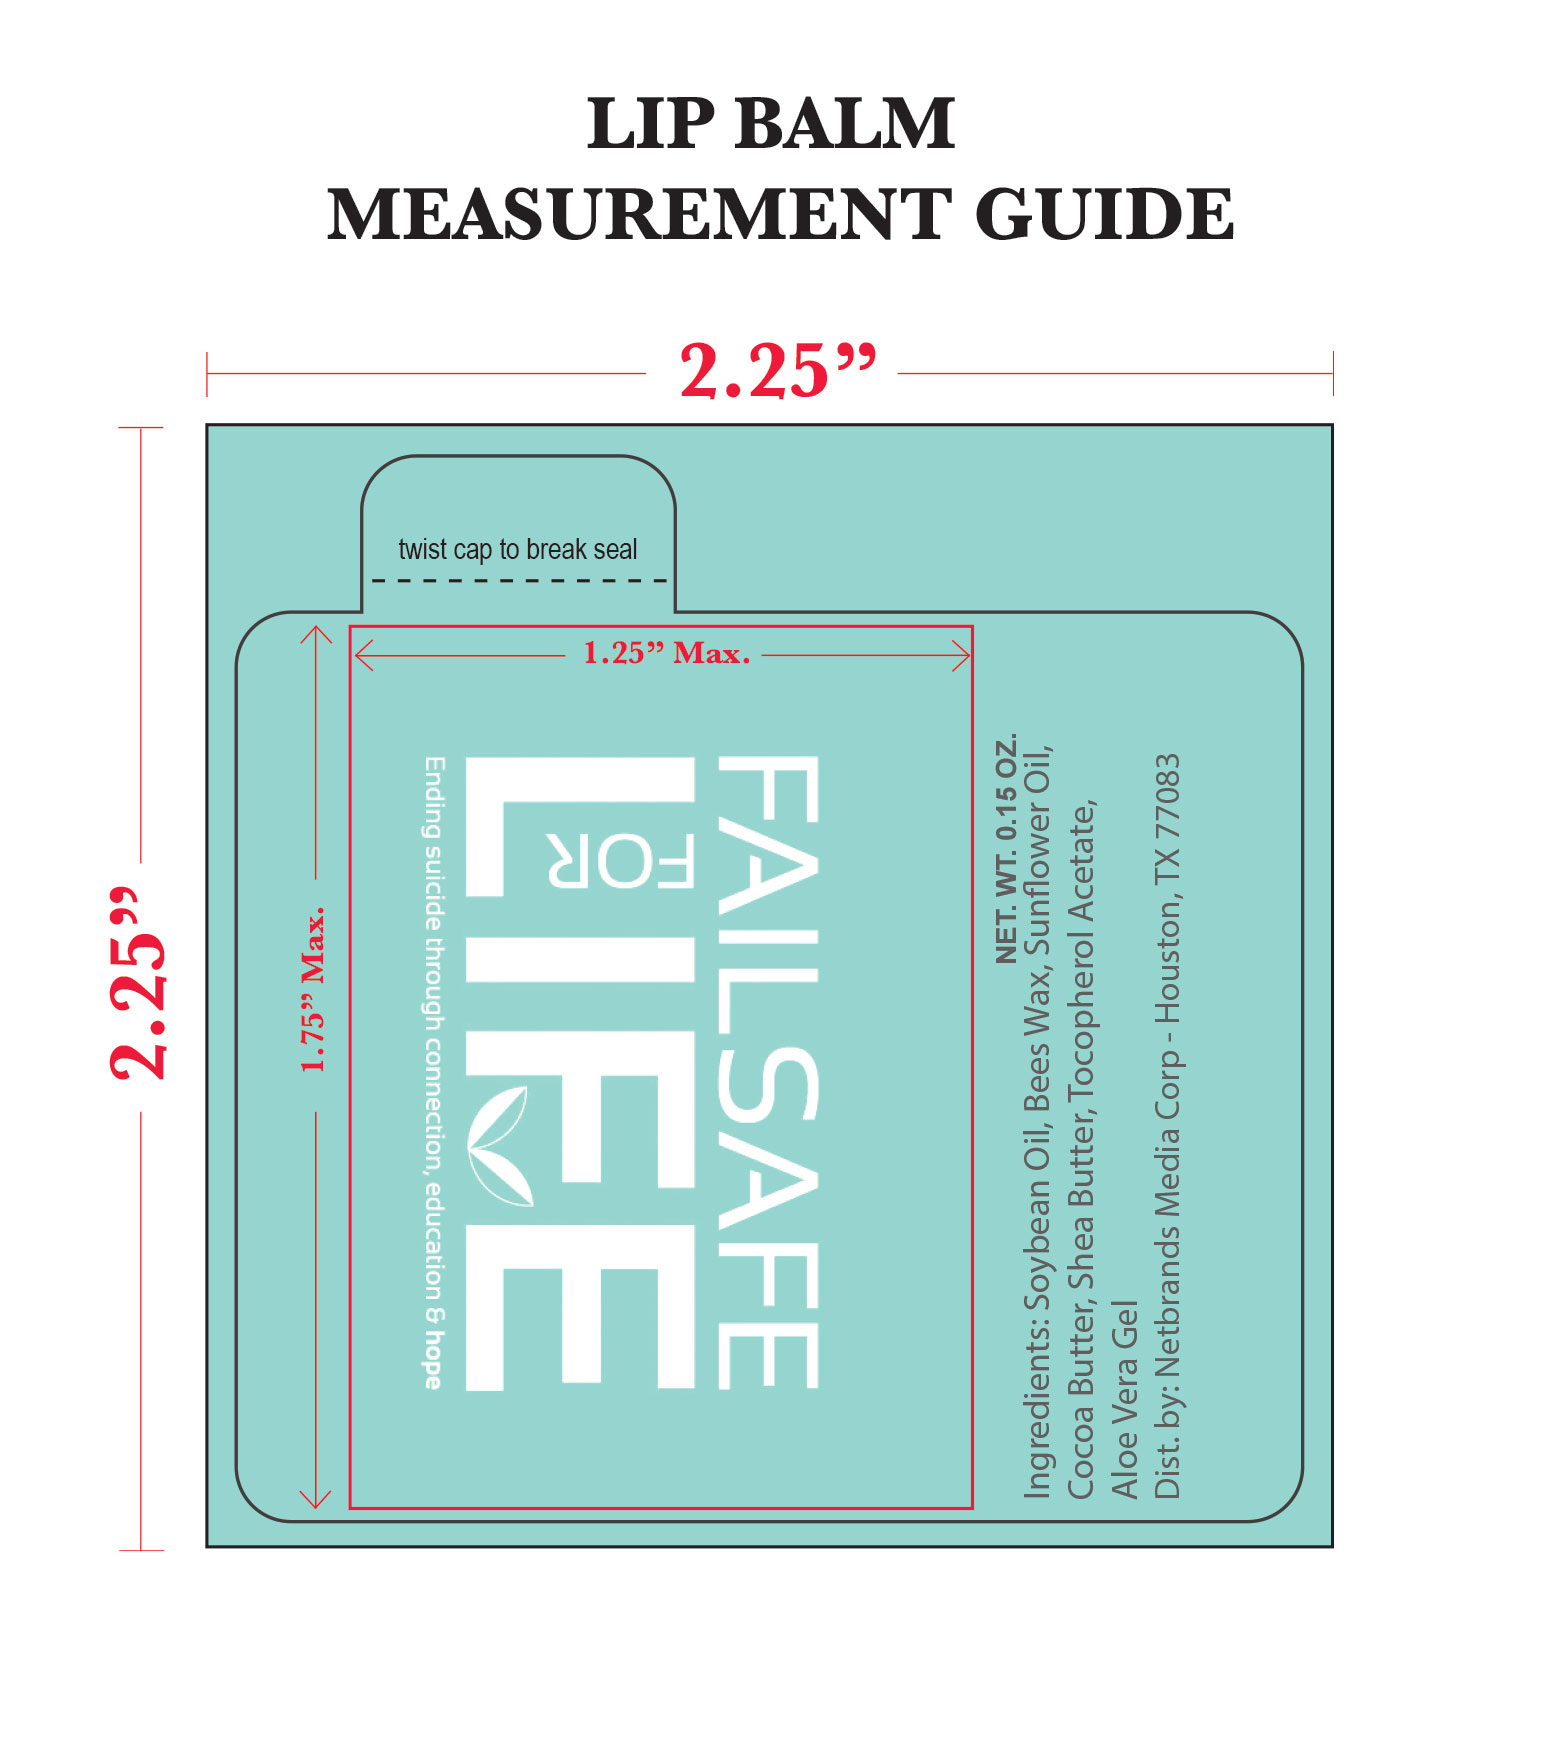 Lip Balm Label Measurement Guide